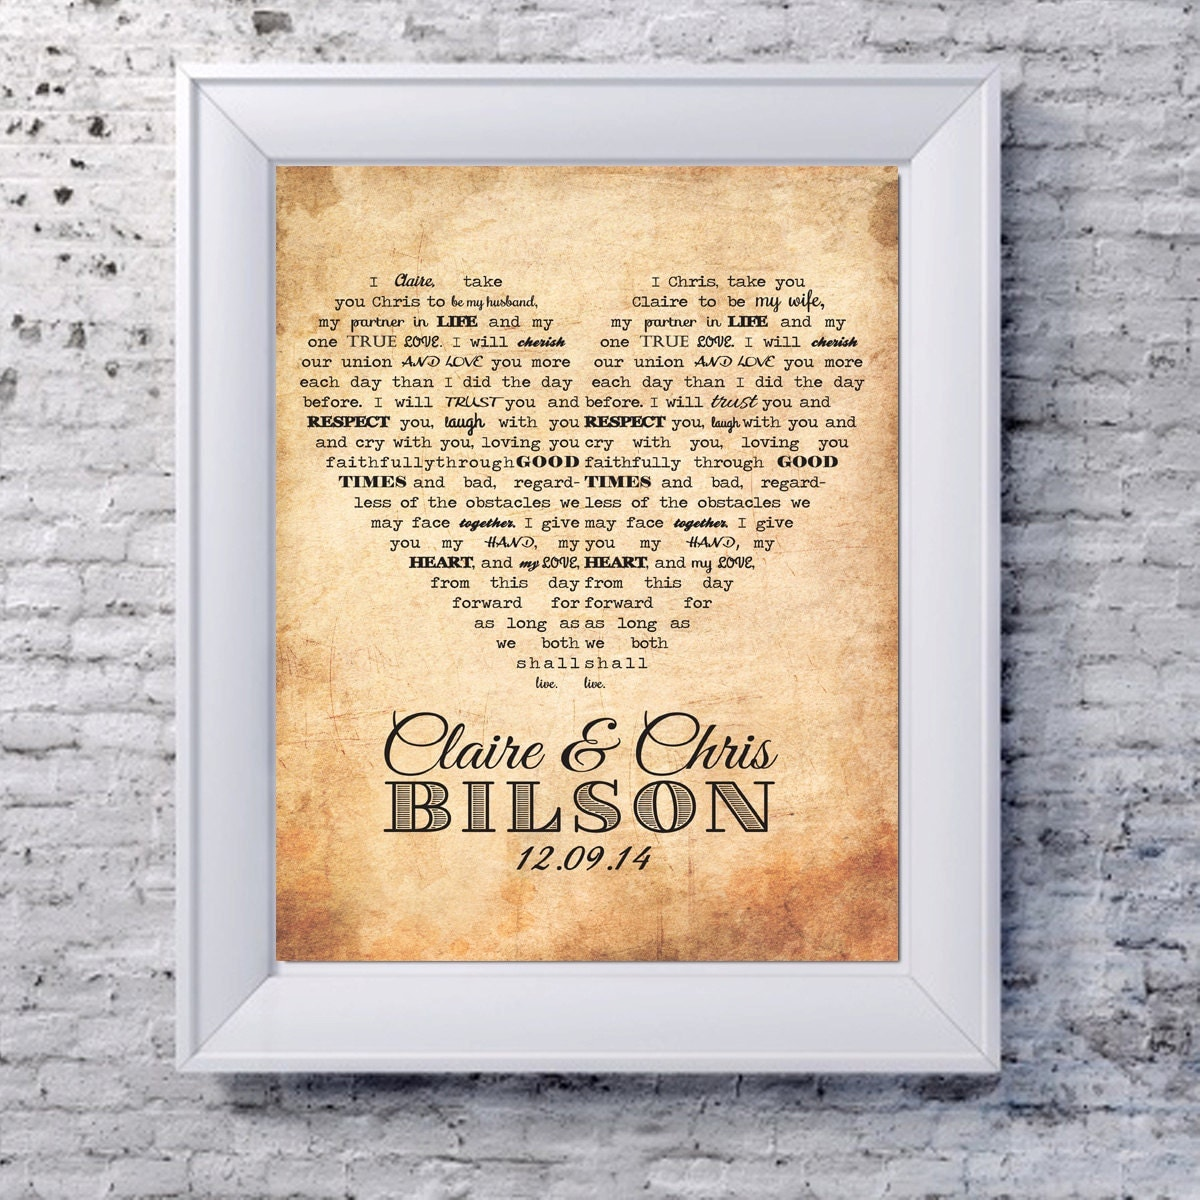 Personalized Wedding Vows: Unique Wedding Gift Personalized Vintage Vows Print